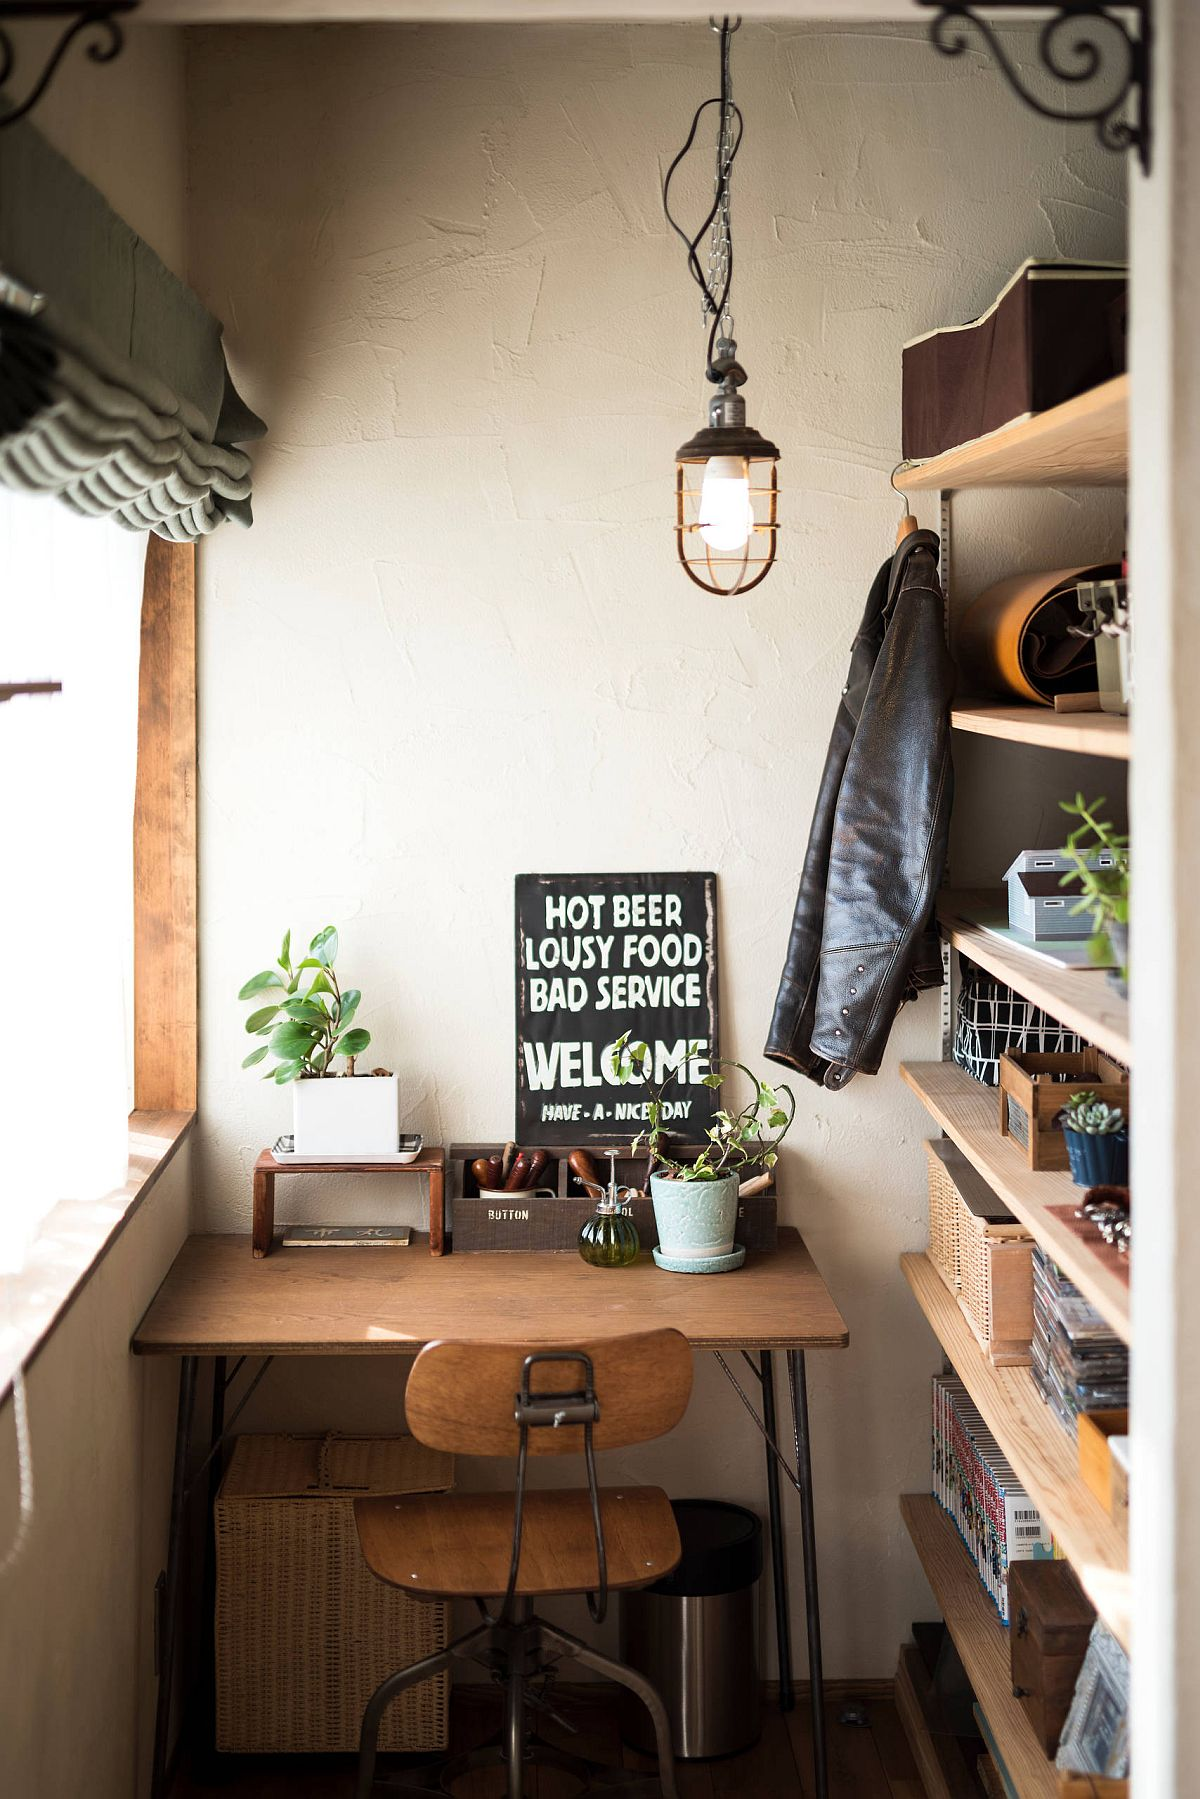 Wooden shelves and desk in the tiny eclectic home office offer smart functionality